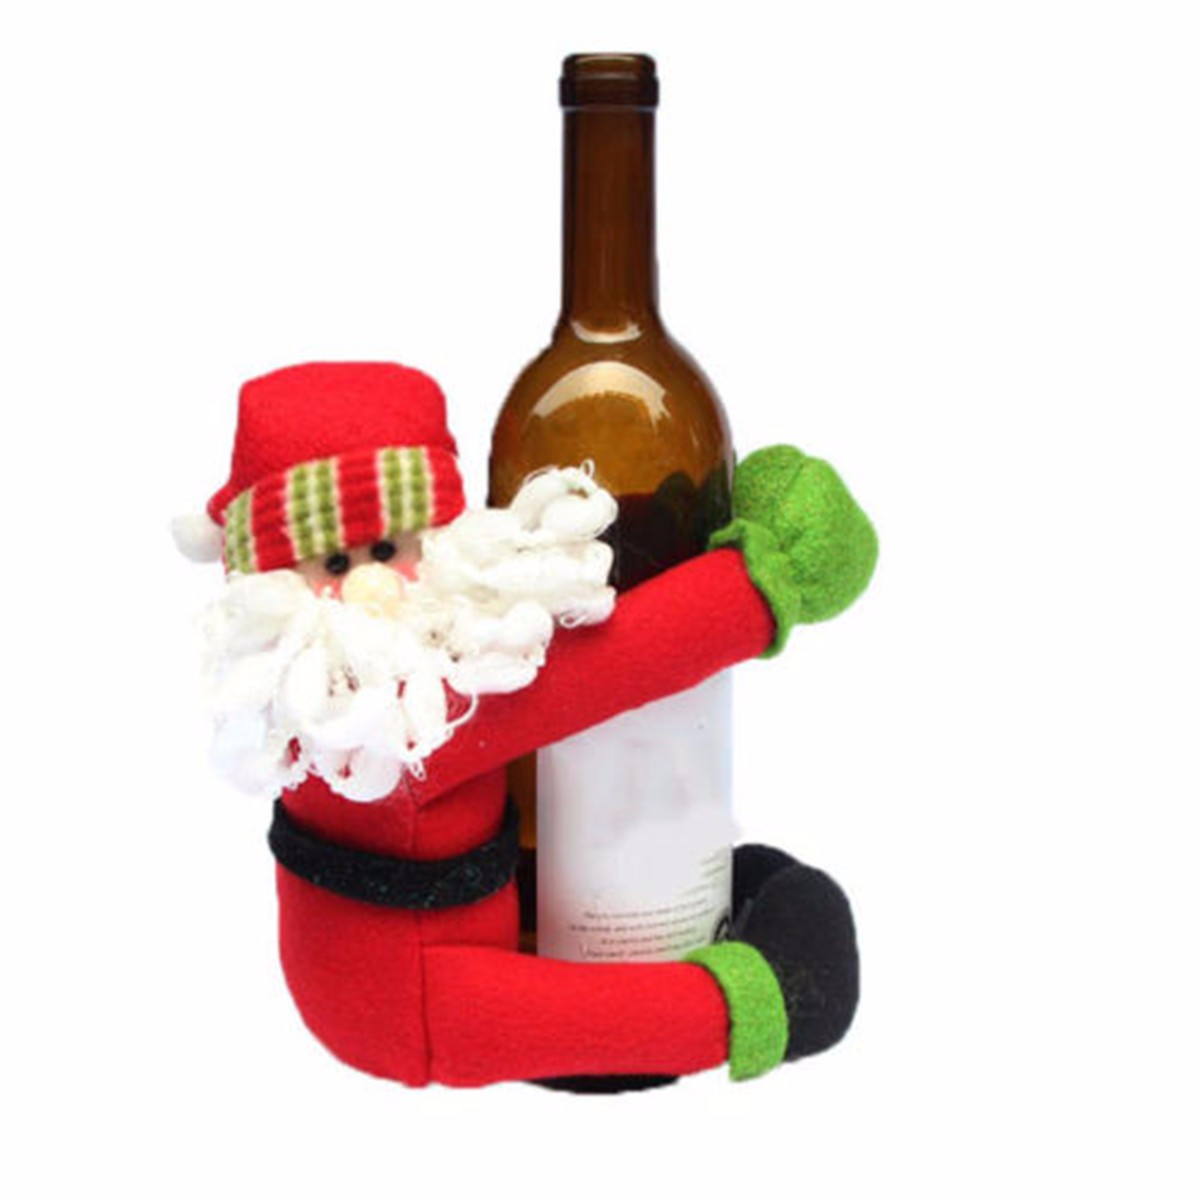 Wine bottle ornaments - Snowman Santa Claus Christmas Wine Bottle Holder 20x23cm Toys Ornaments Figurines Home Decorations Crafts Xmas Gifts